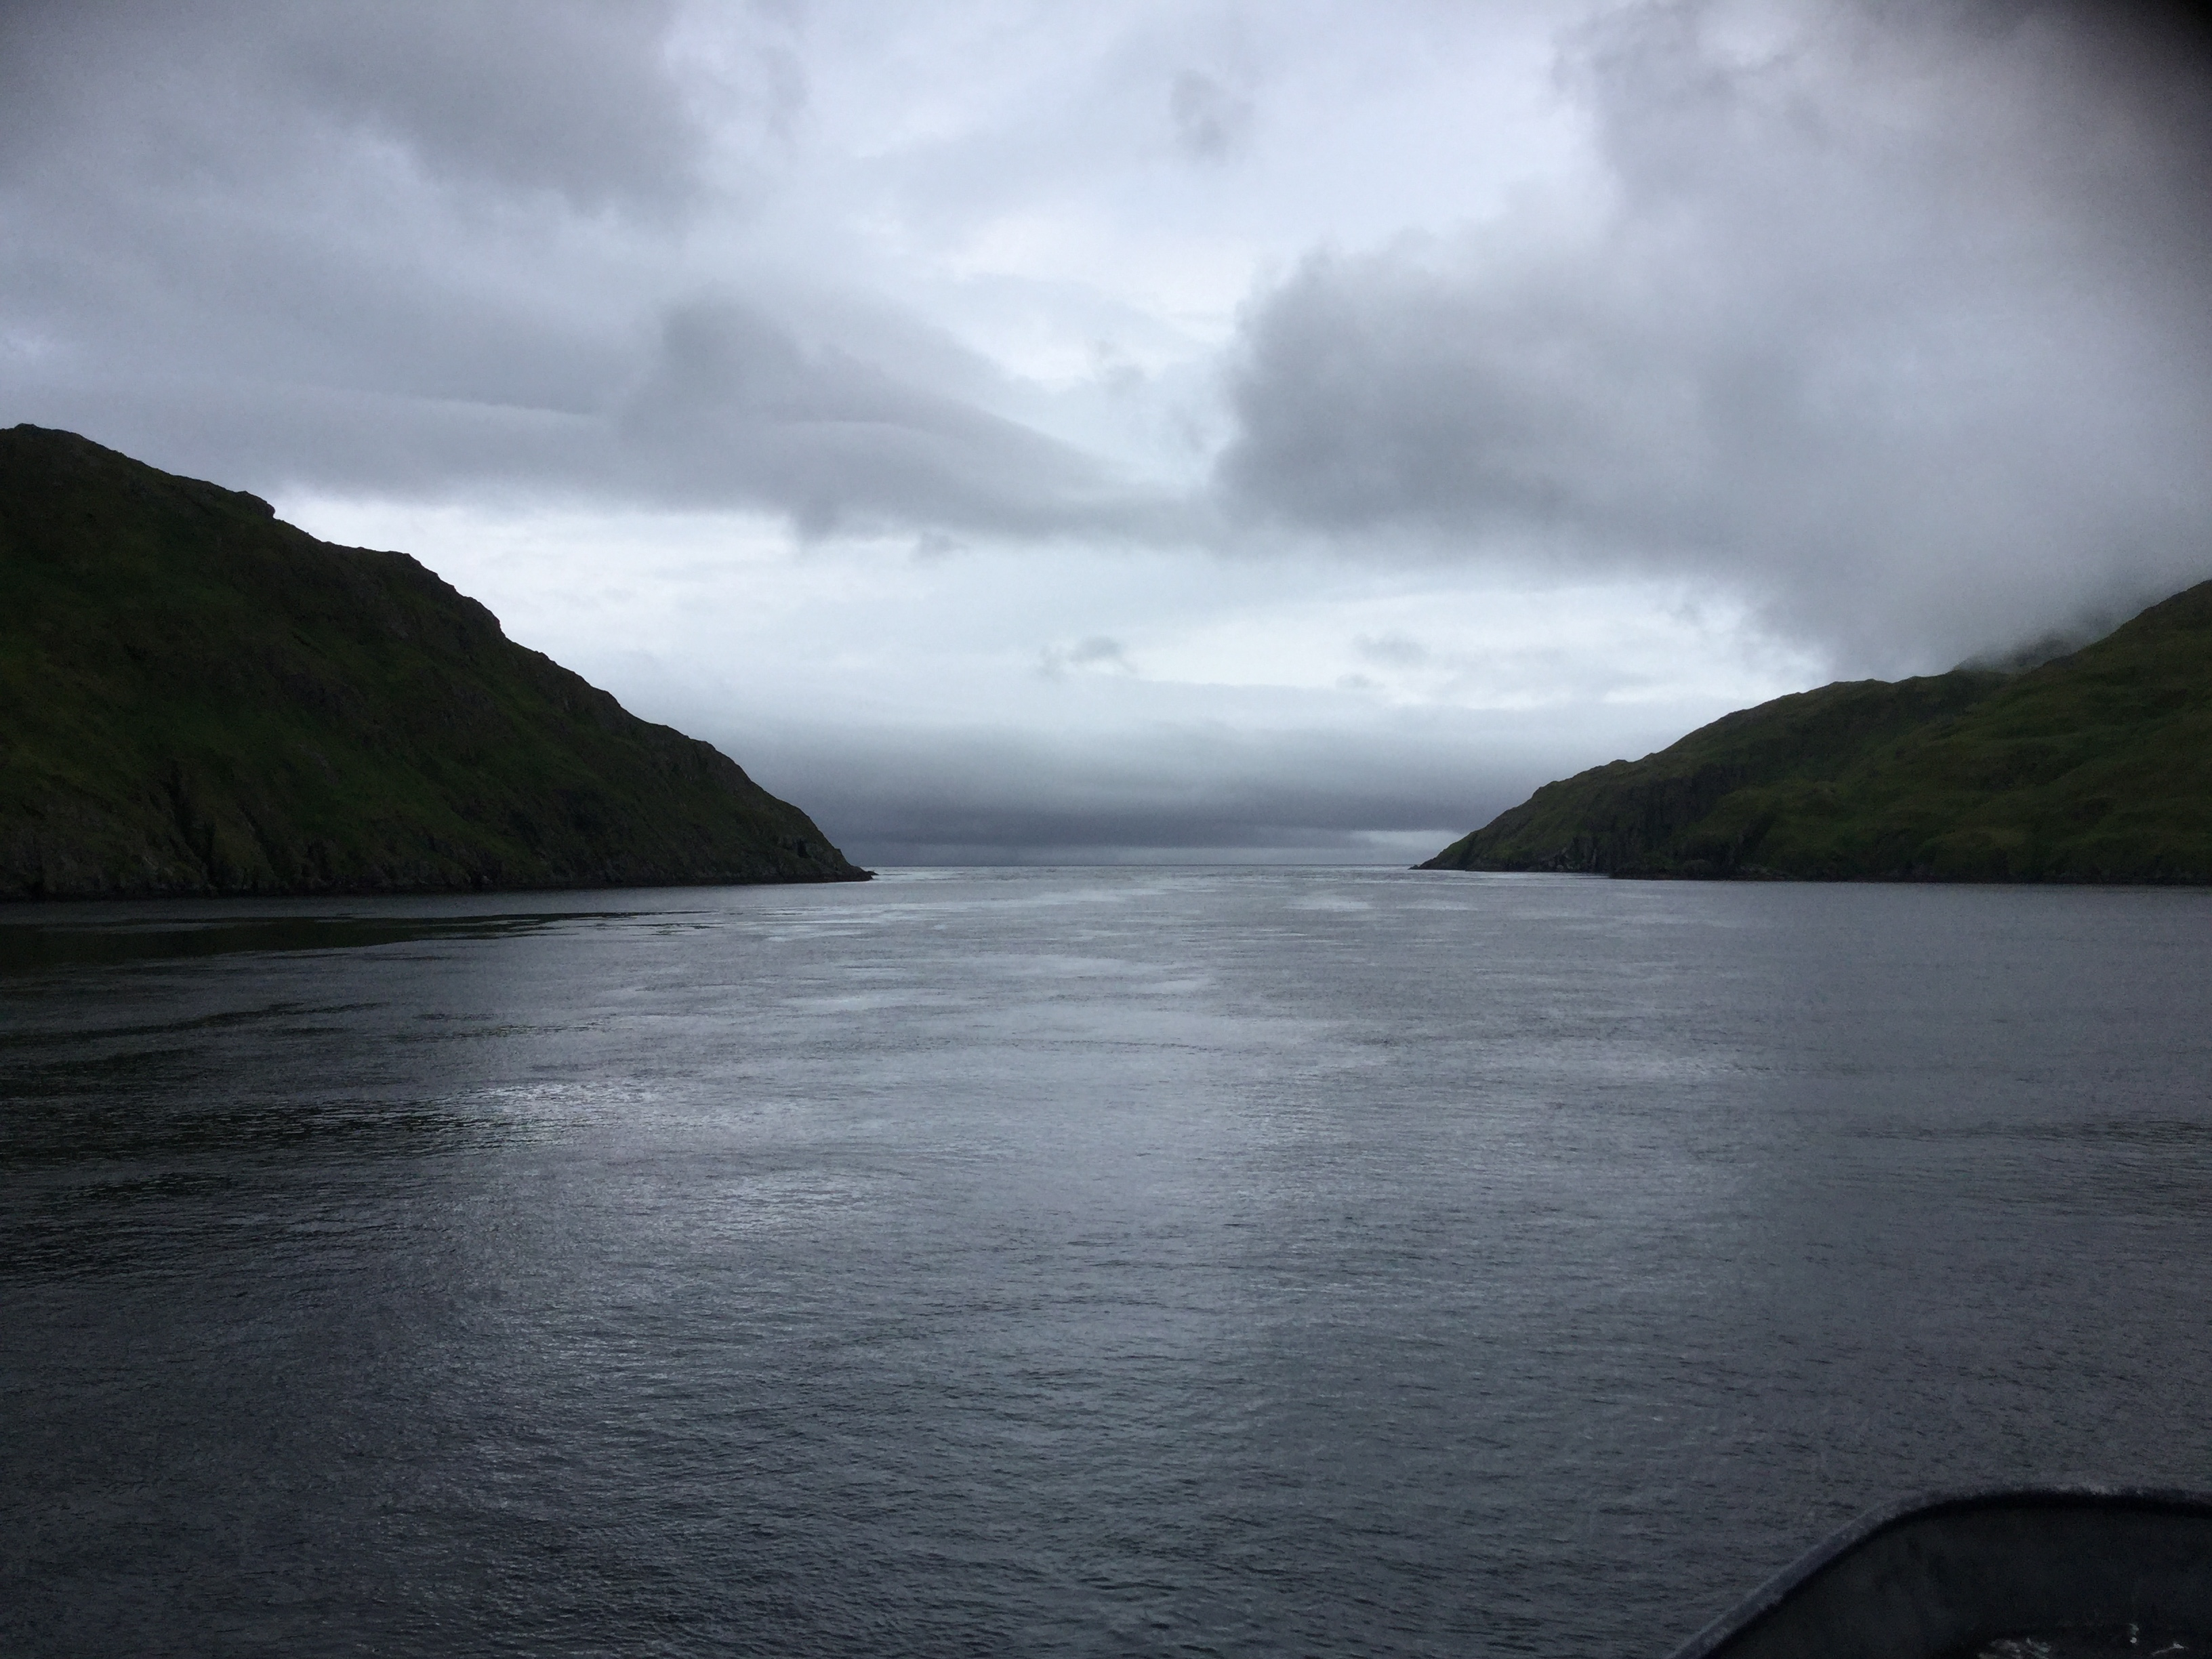 Photo of Kagalaska Strait from the bow of a boat.